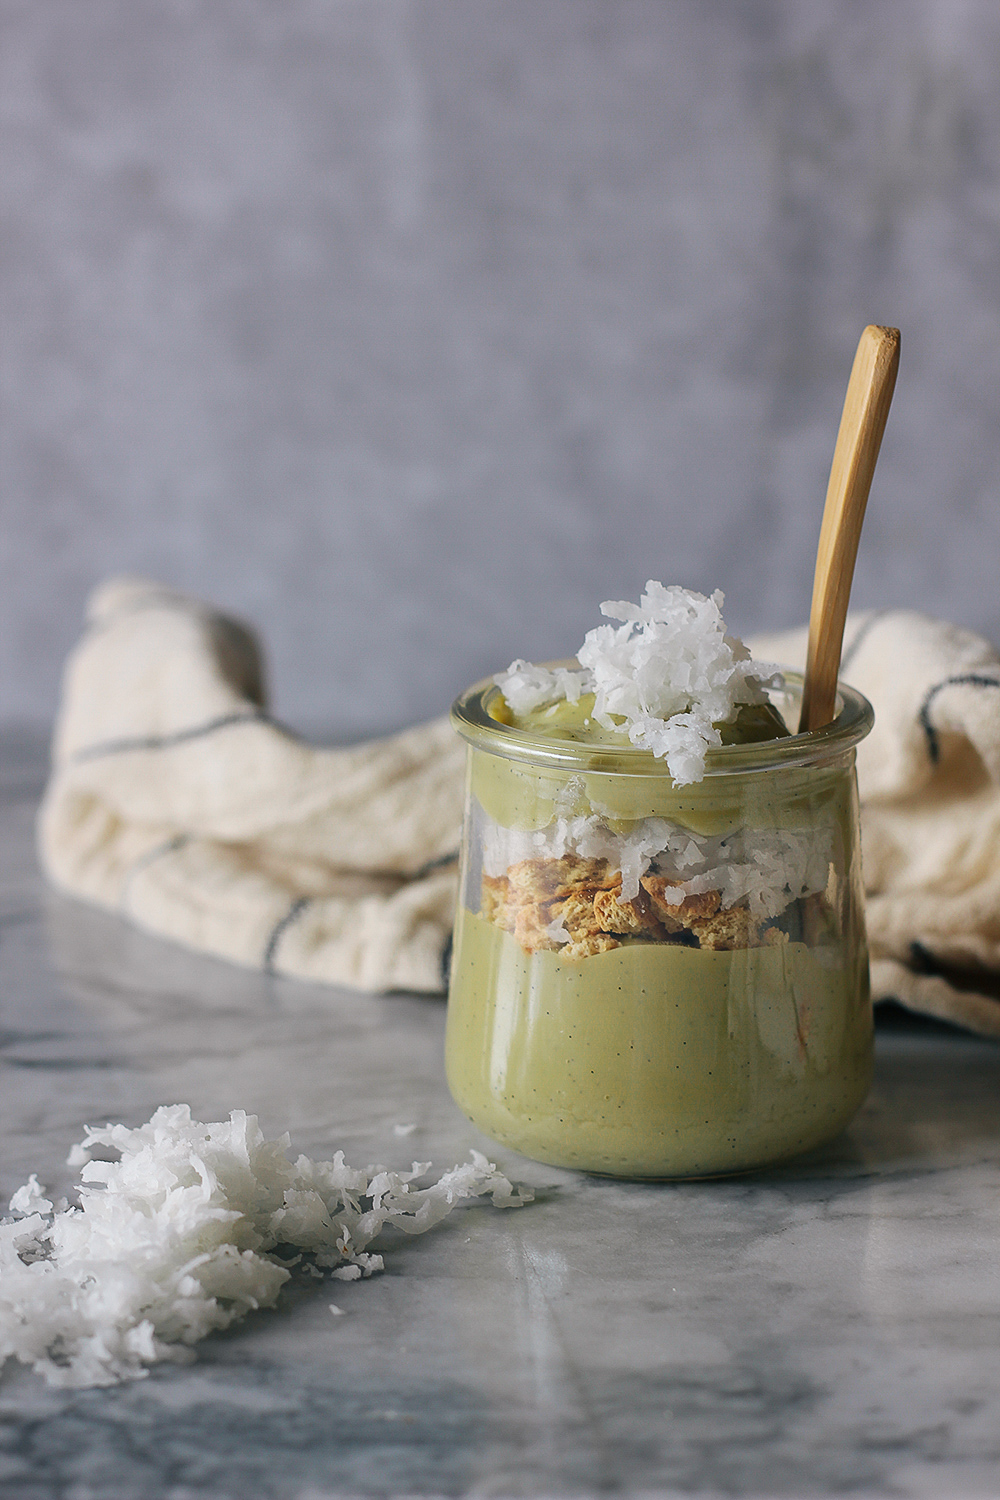 This vegan pudding is made with pistachio milk and vanilla bean. Simple and delicious dessert! Get the recipe at HomemadeBanana.com #recipe #vegan #pudding